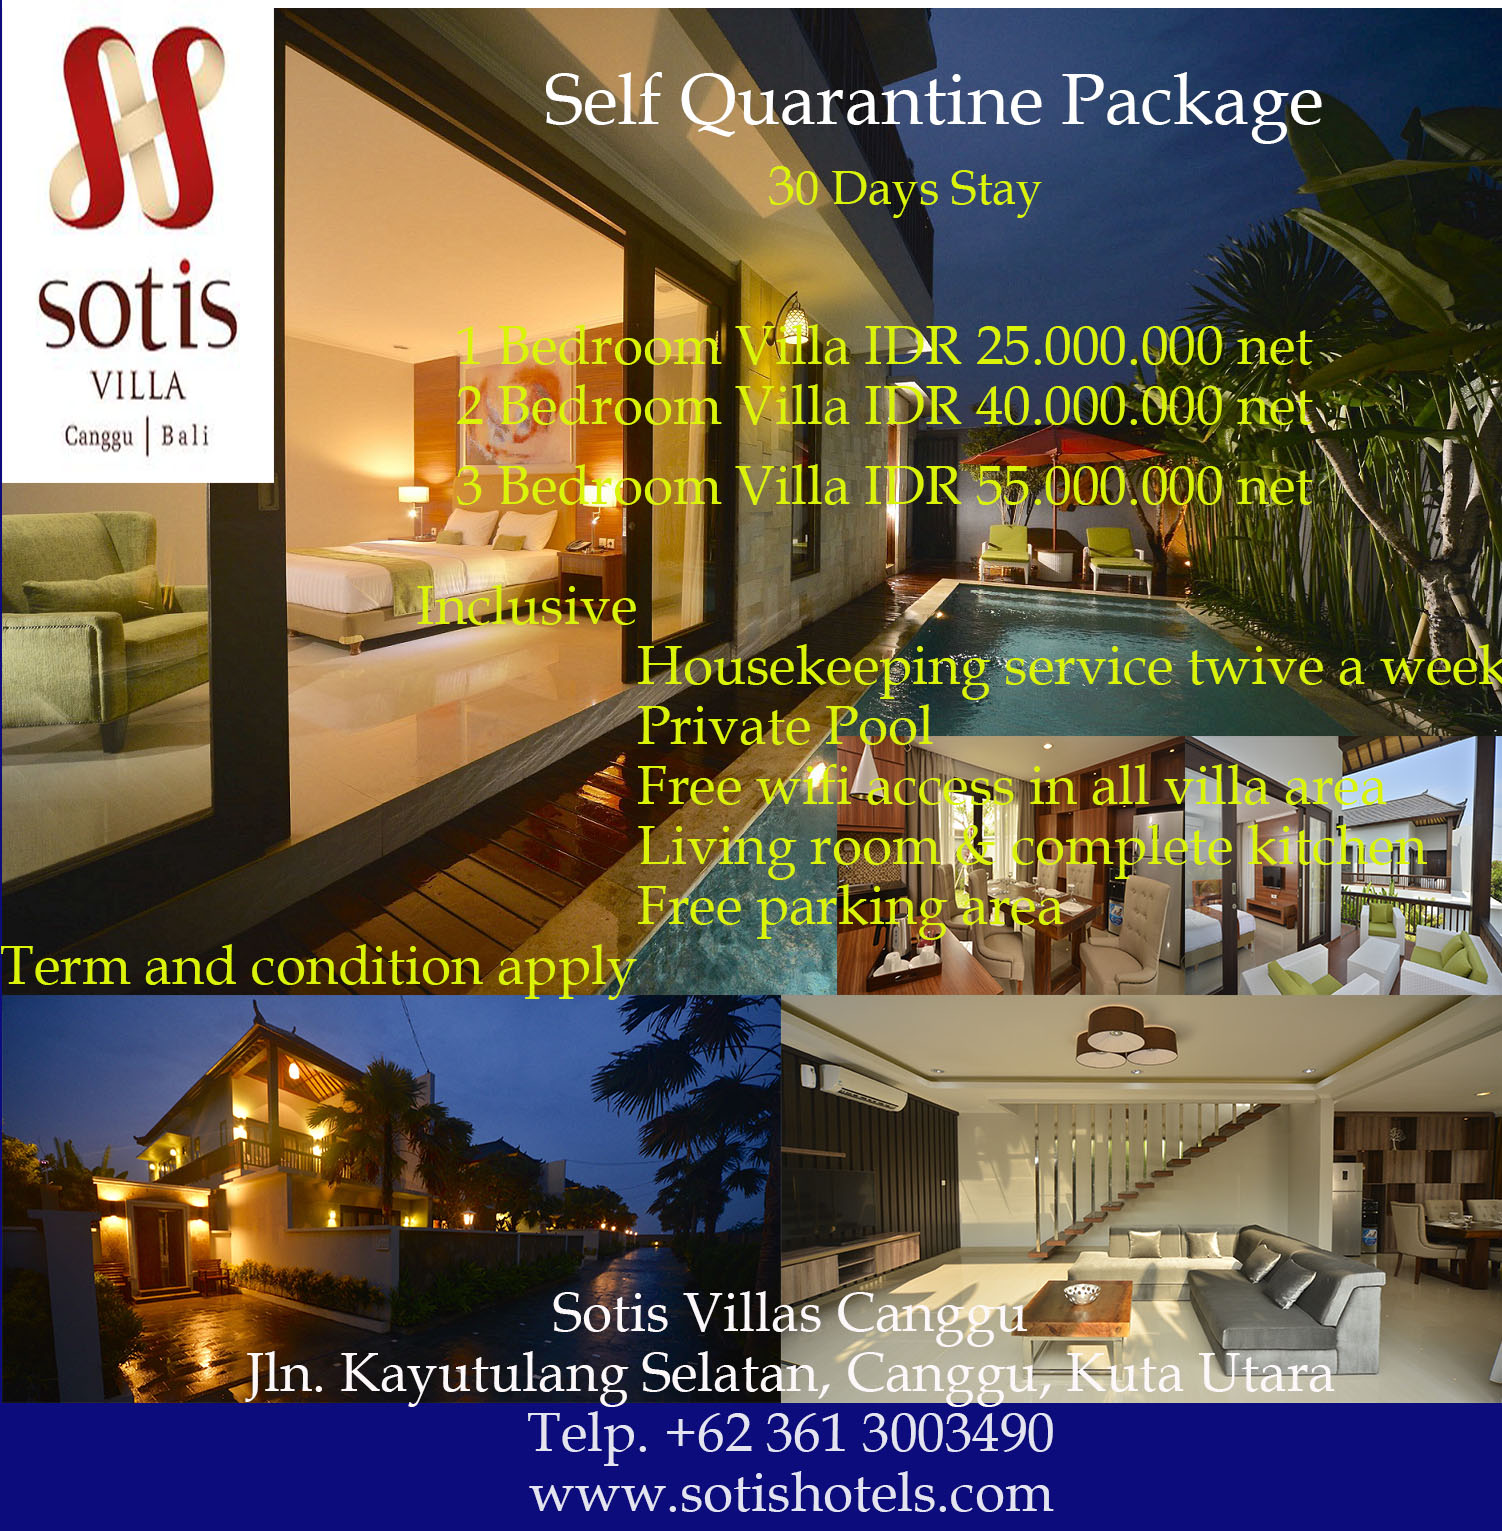 Self Quarantine Package